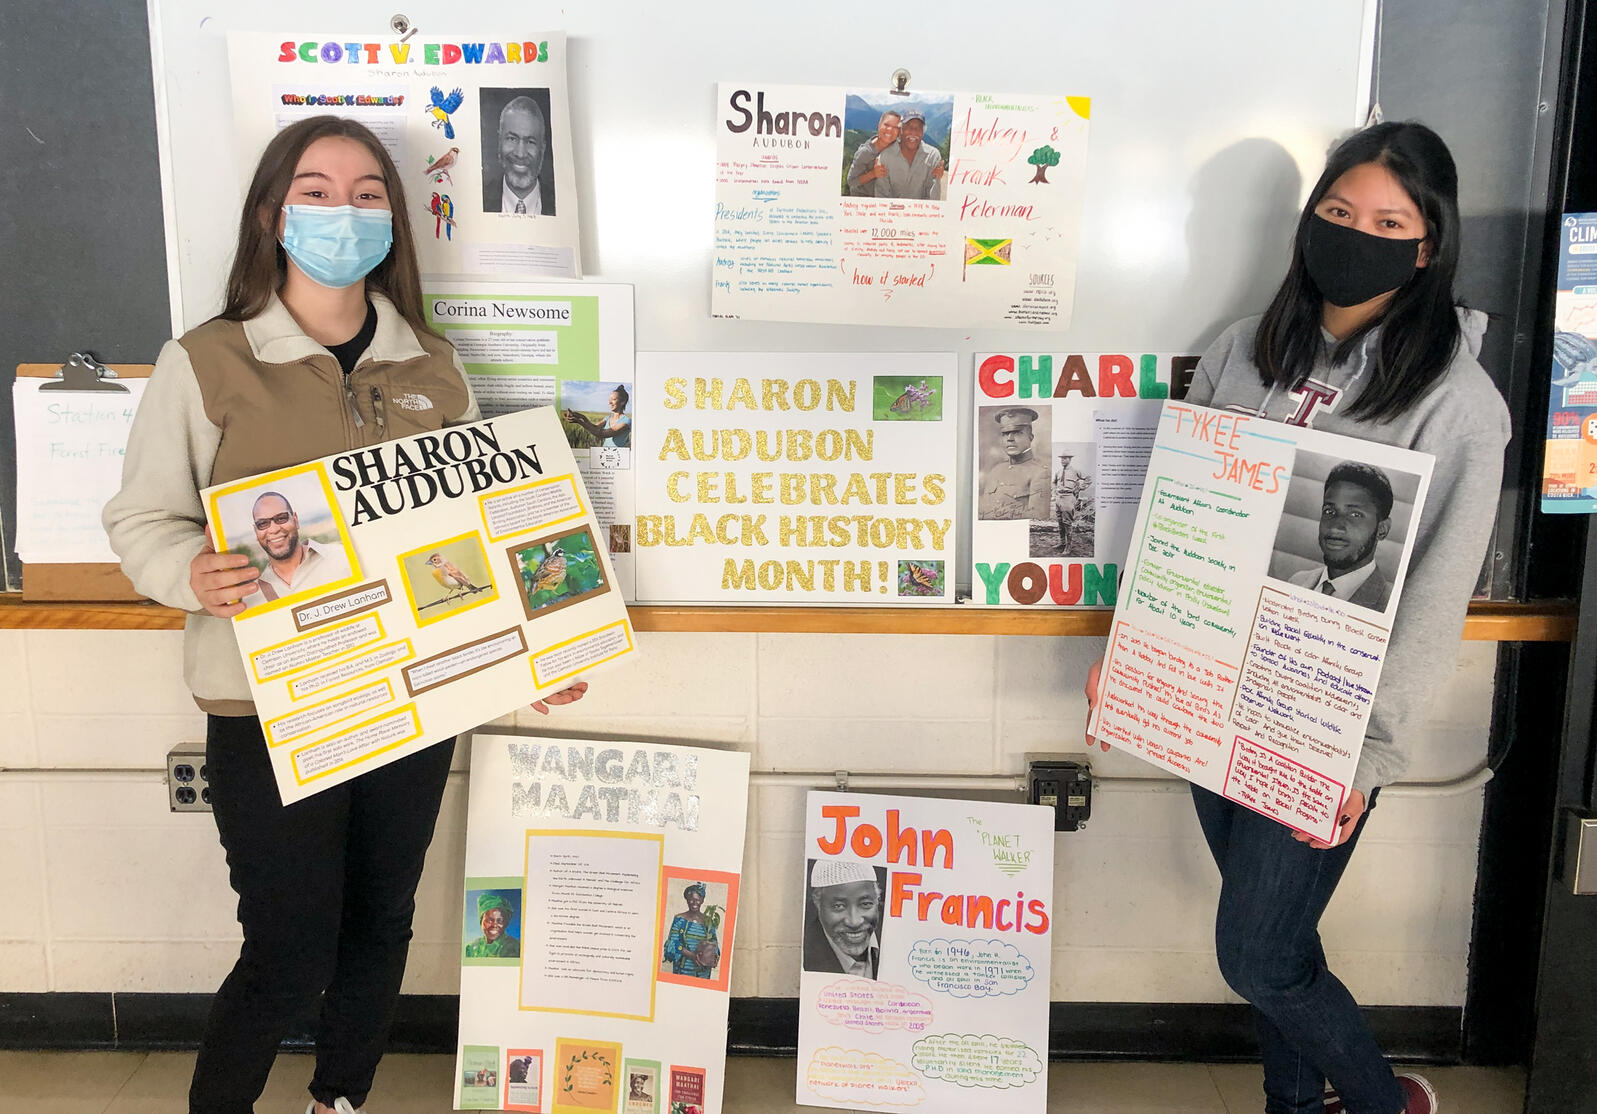 Torrington High School Science Club President Emma Dasilva Martinez, left, and Vice President Jianna Calcinari hold up posters they've made to celebrate Black History Month. Courtesy of Torrington High School Science Club